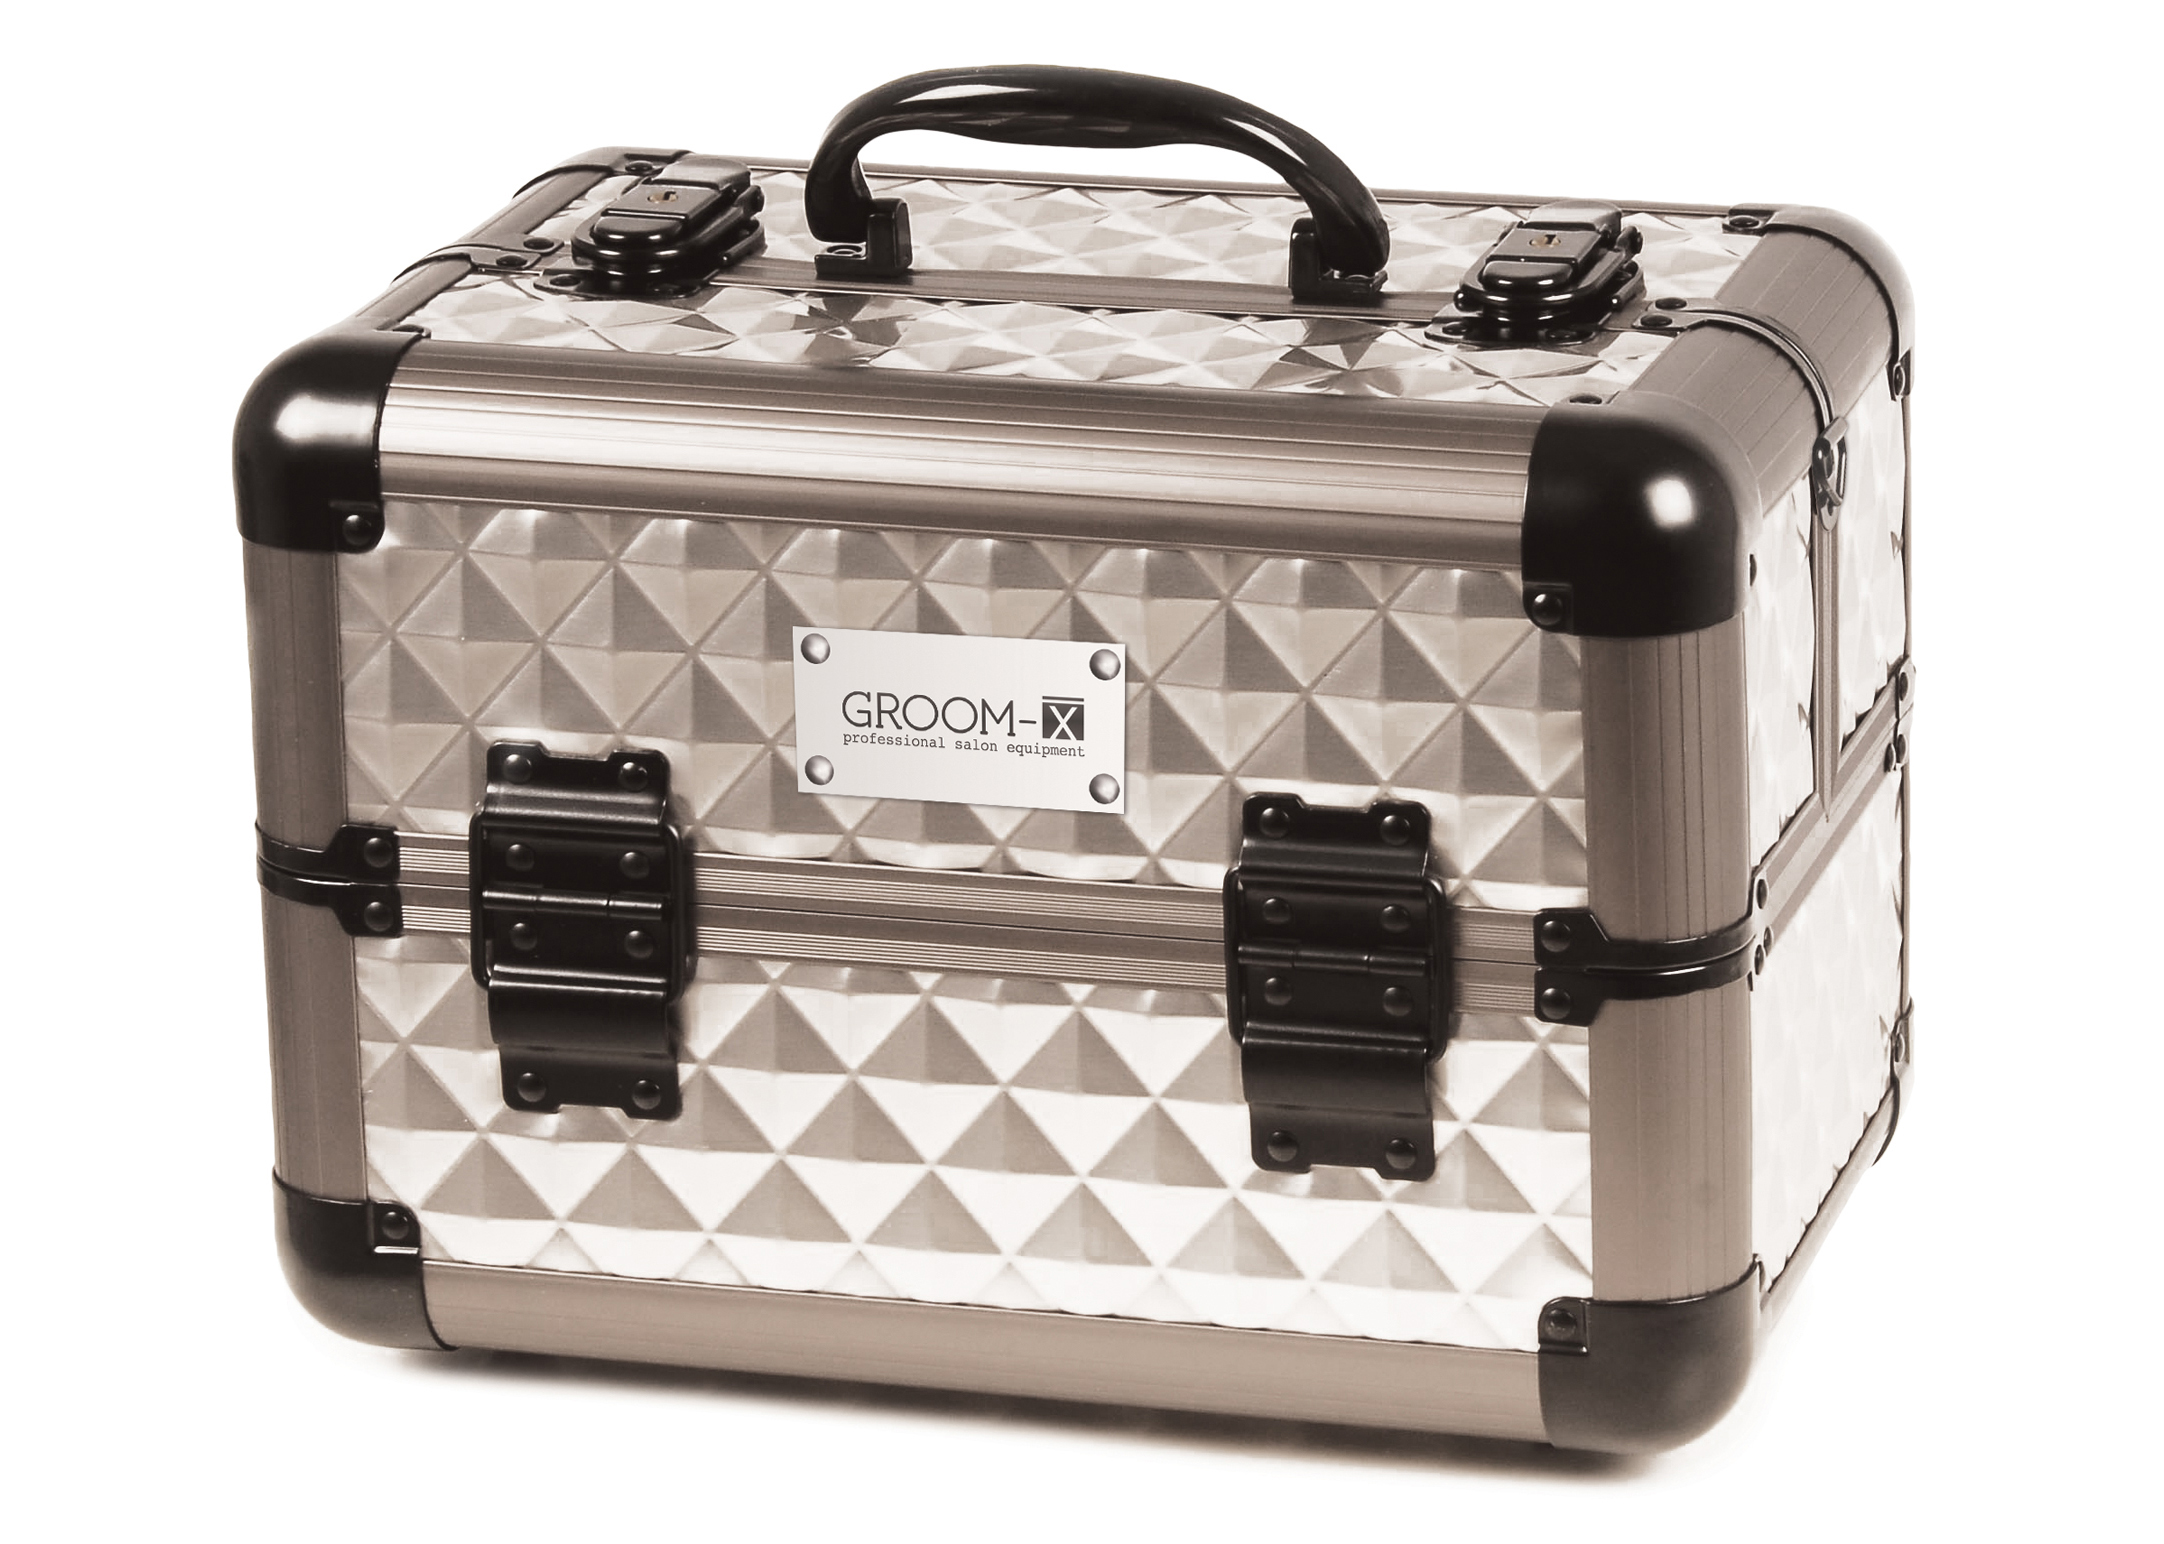 Groom-X Grooming Case Mini Portable with Diamond ABS Panel